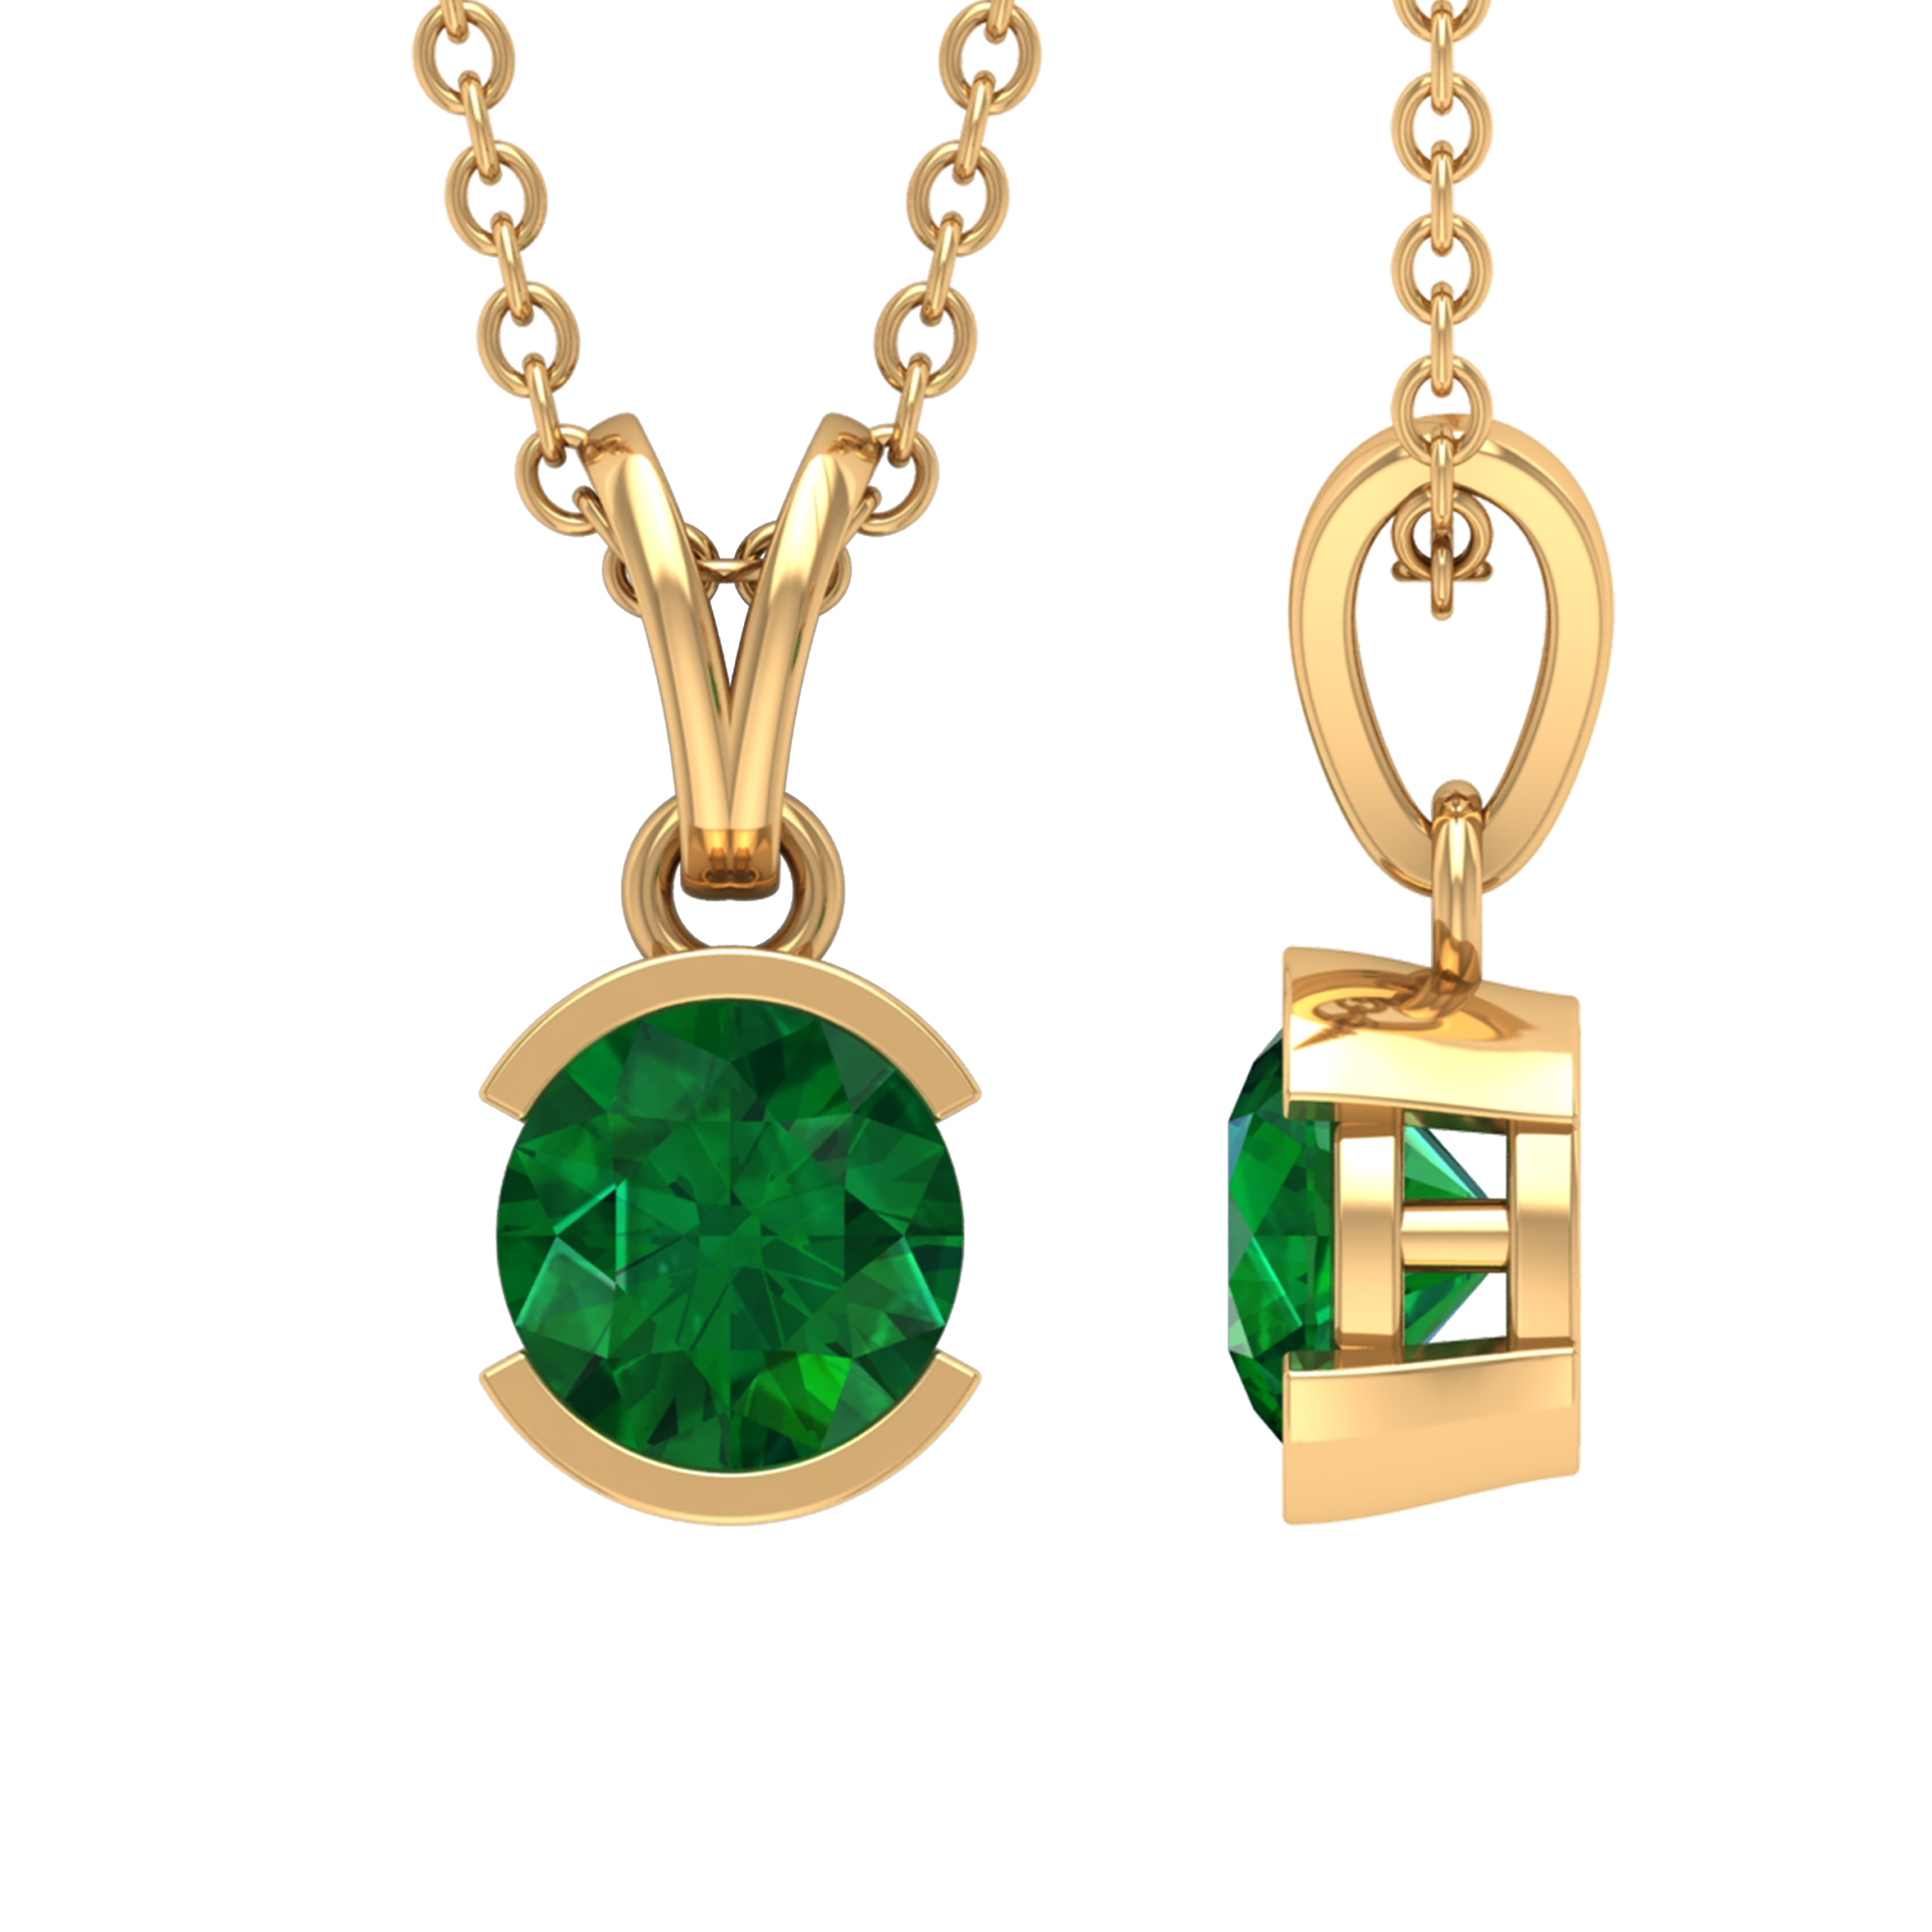 May Birthstone 5 MM Half Bezel Set Round Cut Solitaire Emerald Pendant with Rabbit Ear Bail